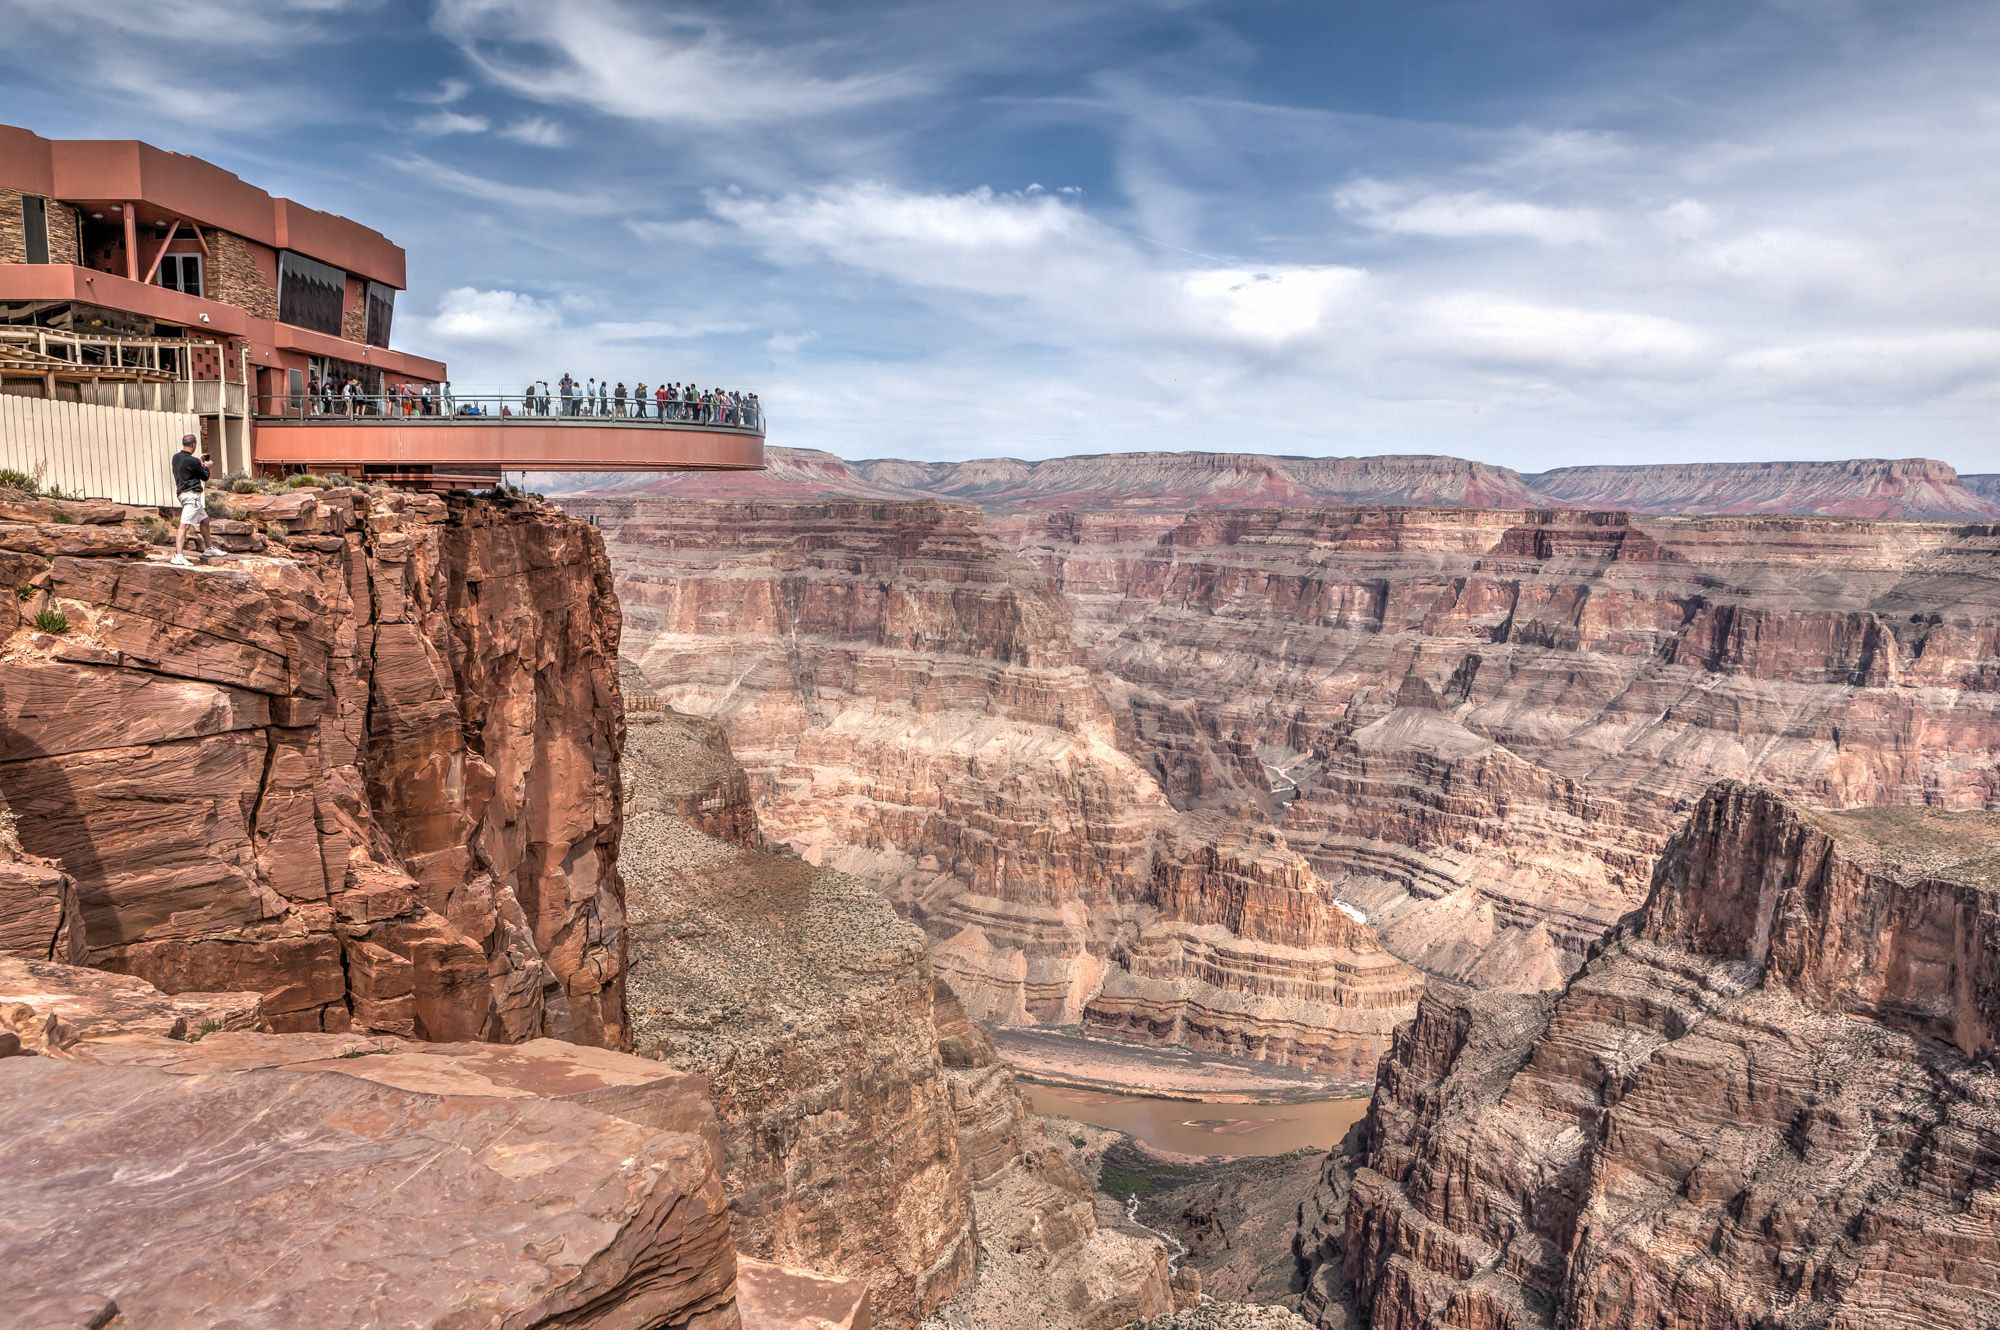 Grand canyon skywalk photo gallery Download